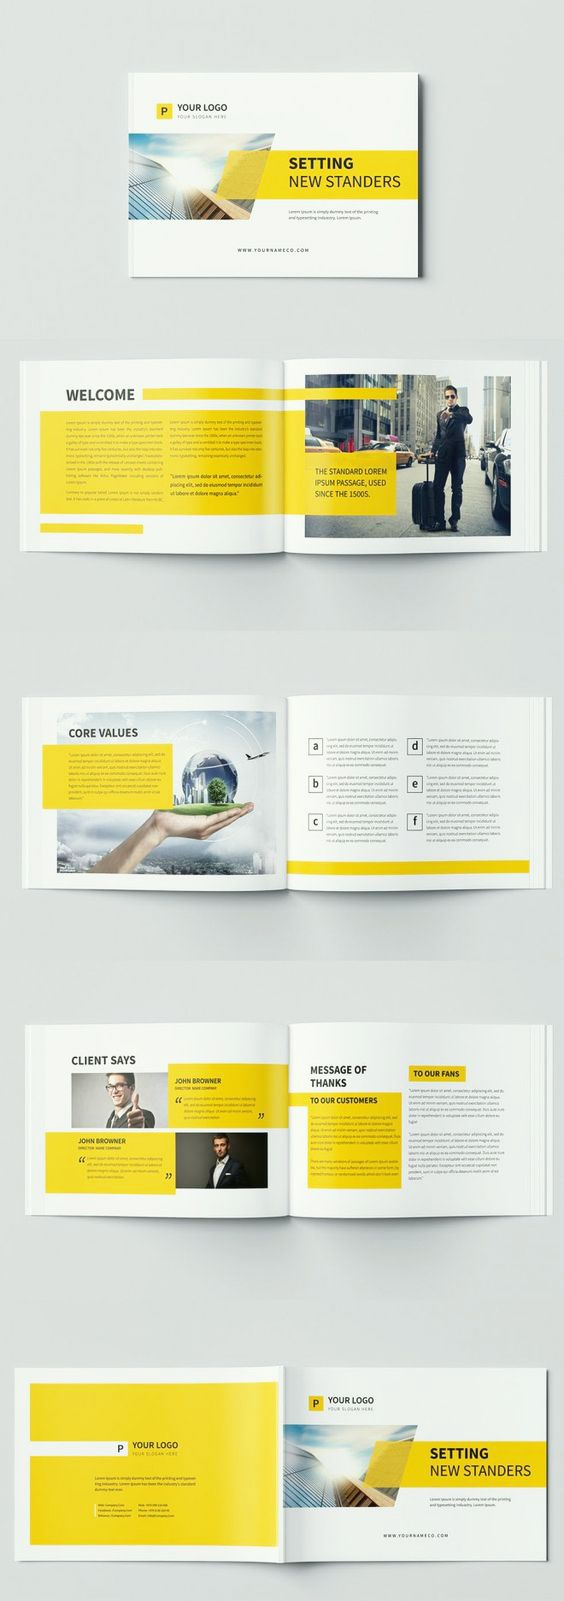 94 best brochure design template images on Pinterest | Brochure ...